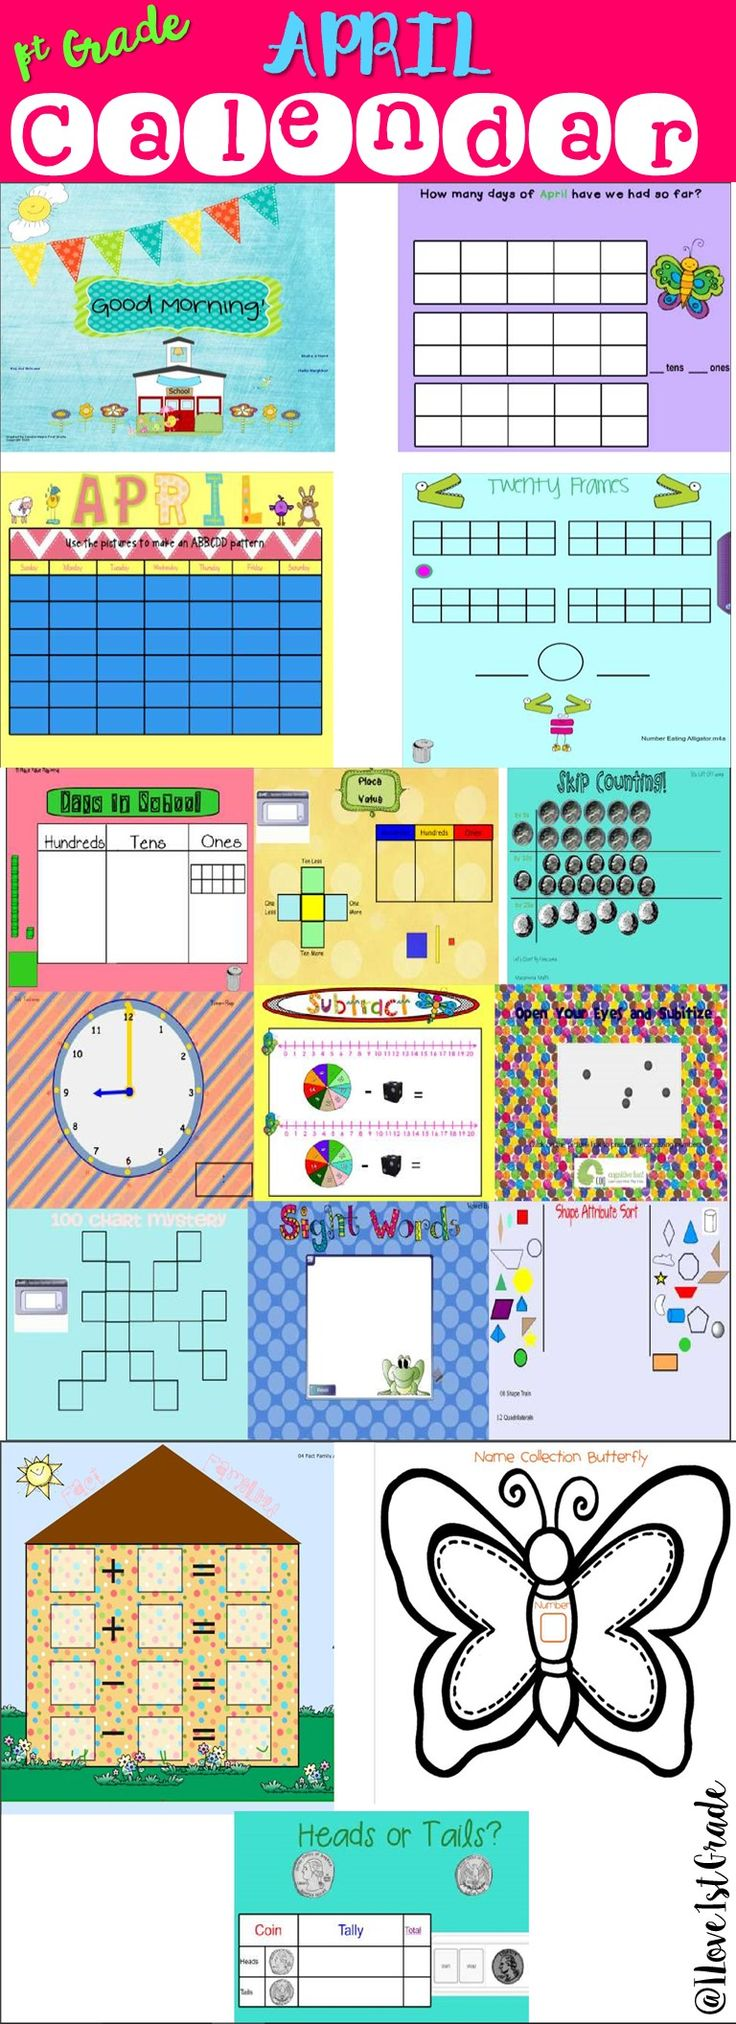 This 19 page SMARTBoard calendar is all you'll need to begin each day of April with a rigorous yet engaging start. It is aligned with CCSS ELA and NBT, Geometry, Data and Measurement and Operations standards.